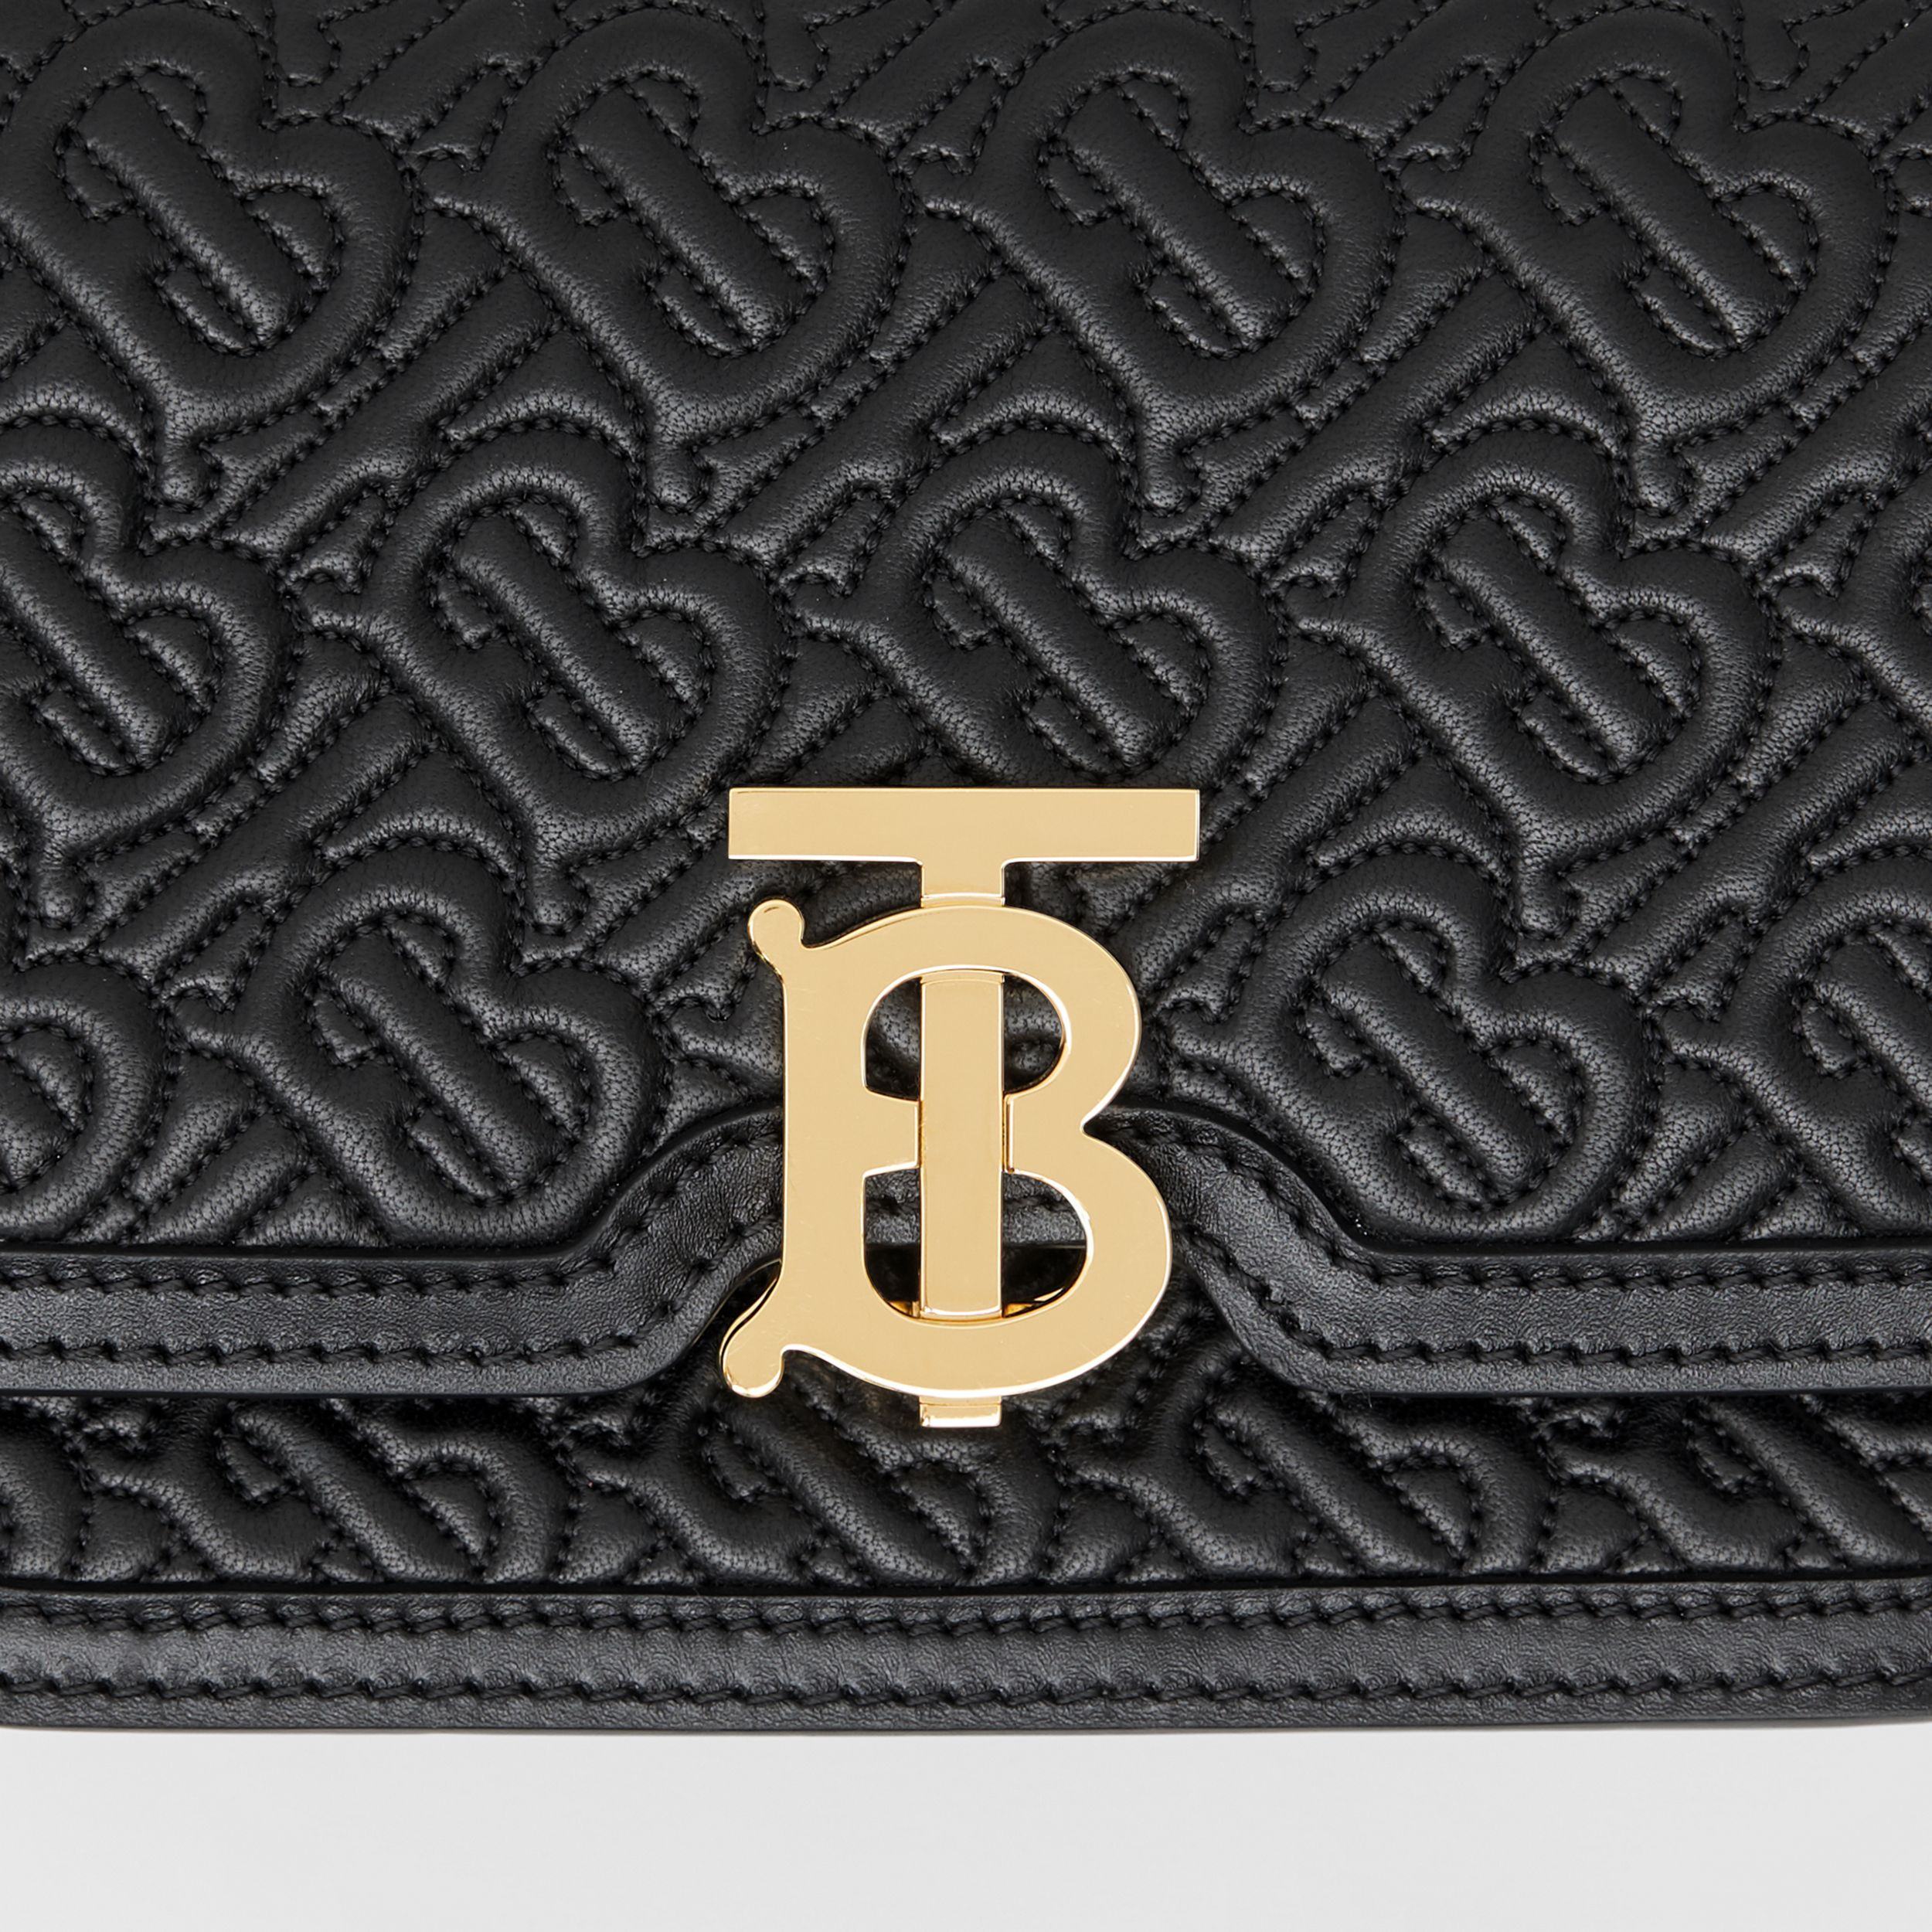 Belted Quilted Monogram Lambskin TB Bag in Black - Women | Burberry - 2